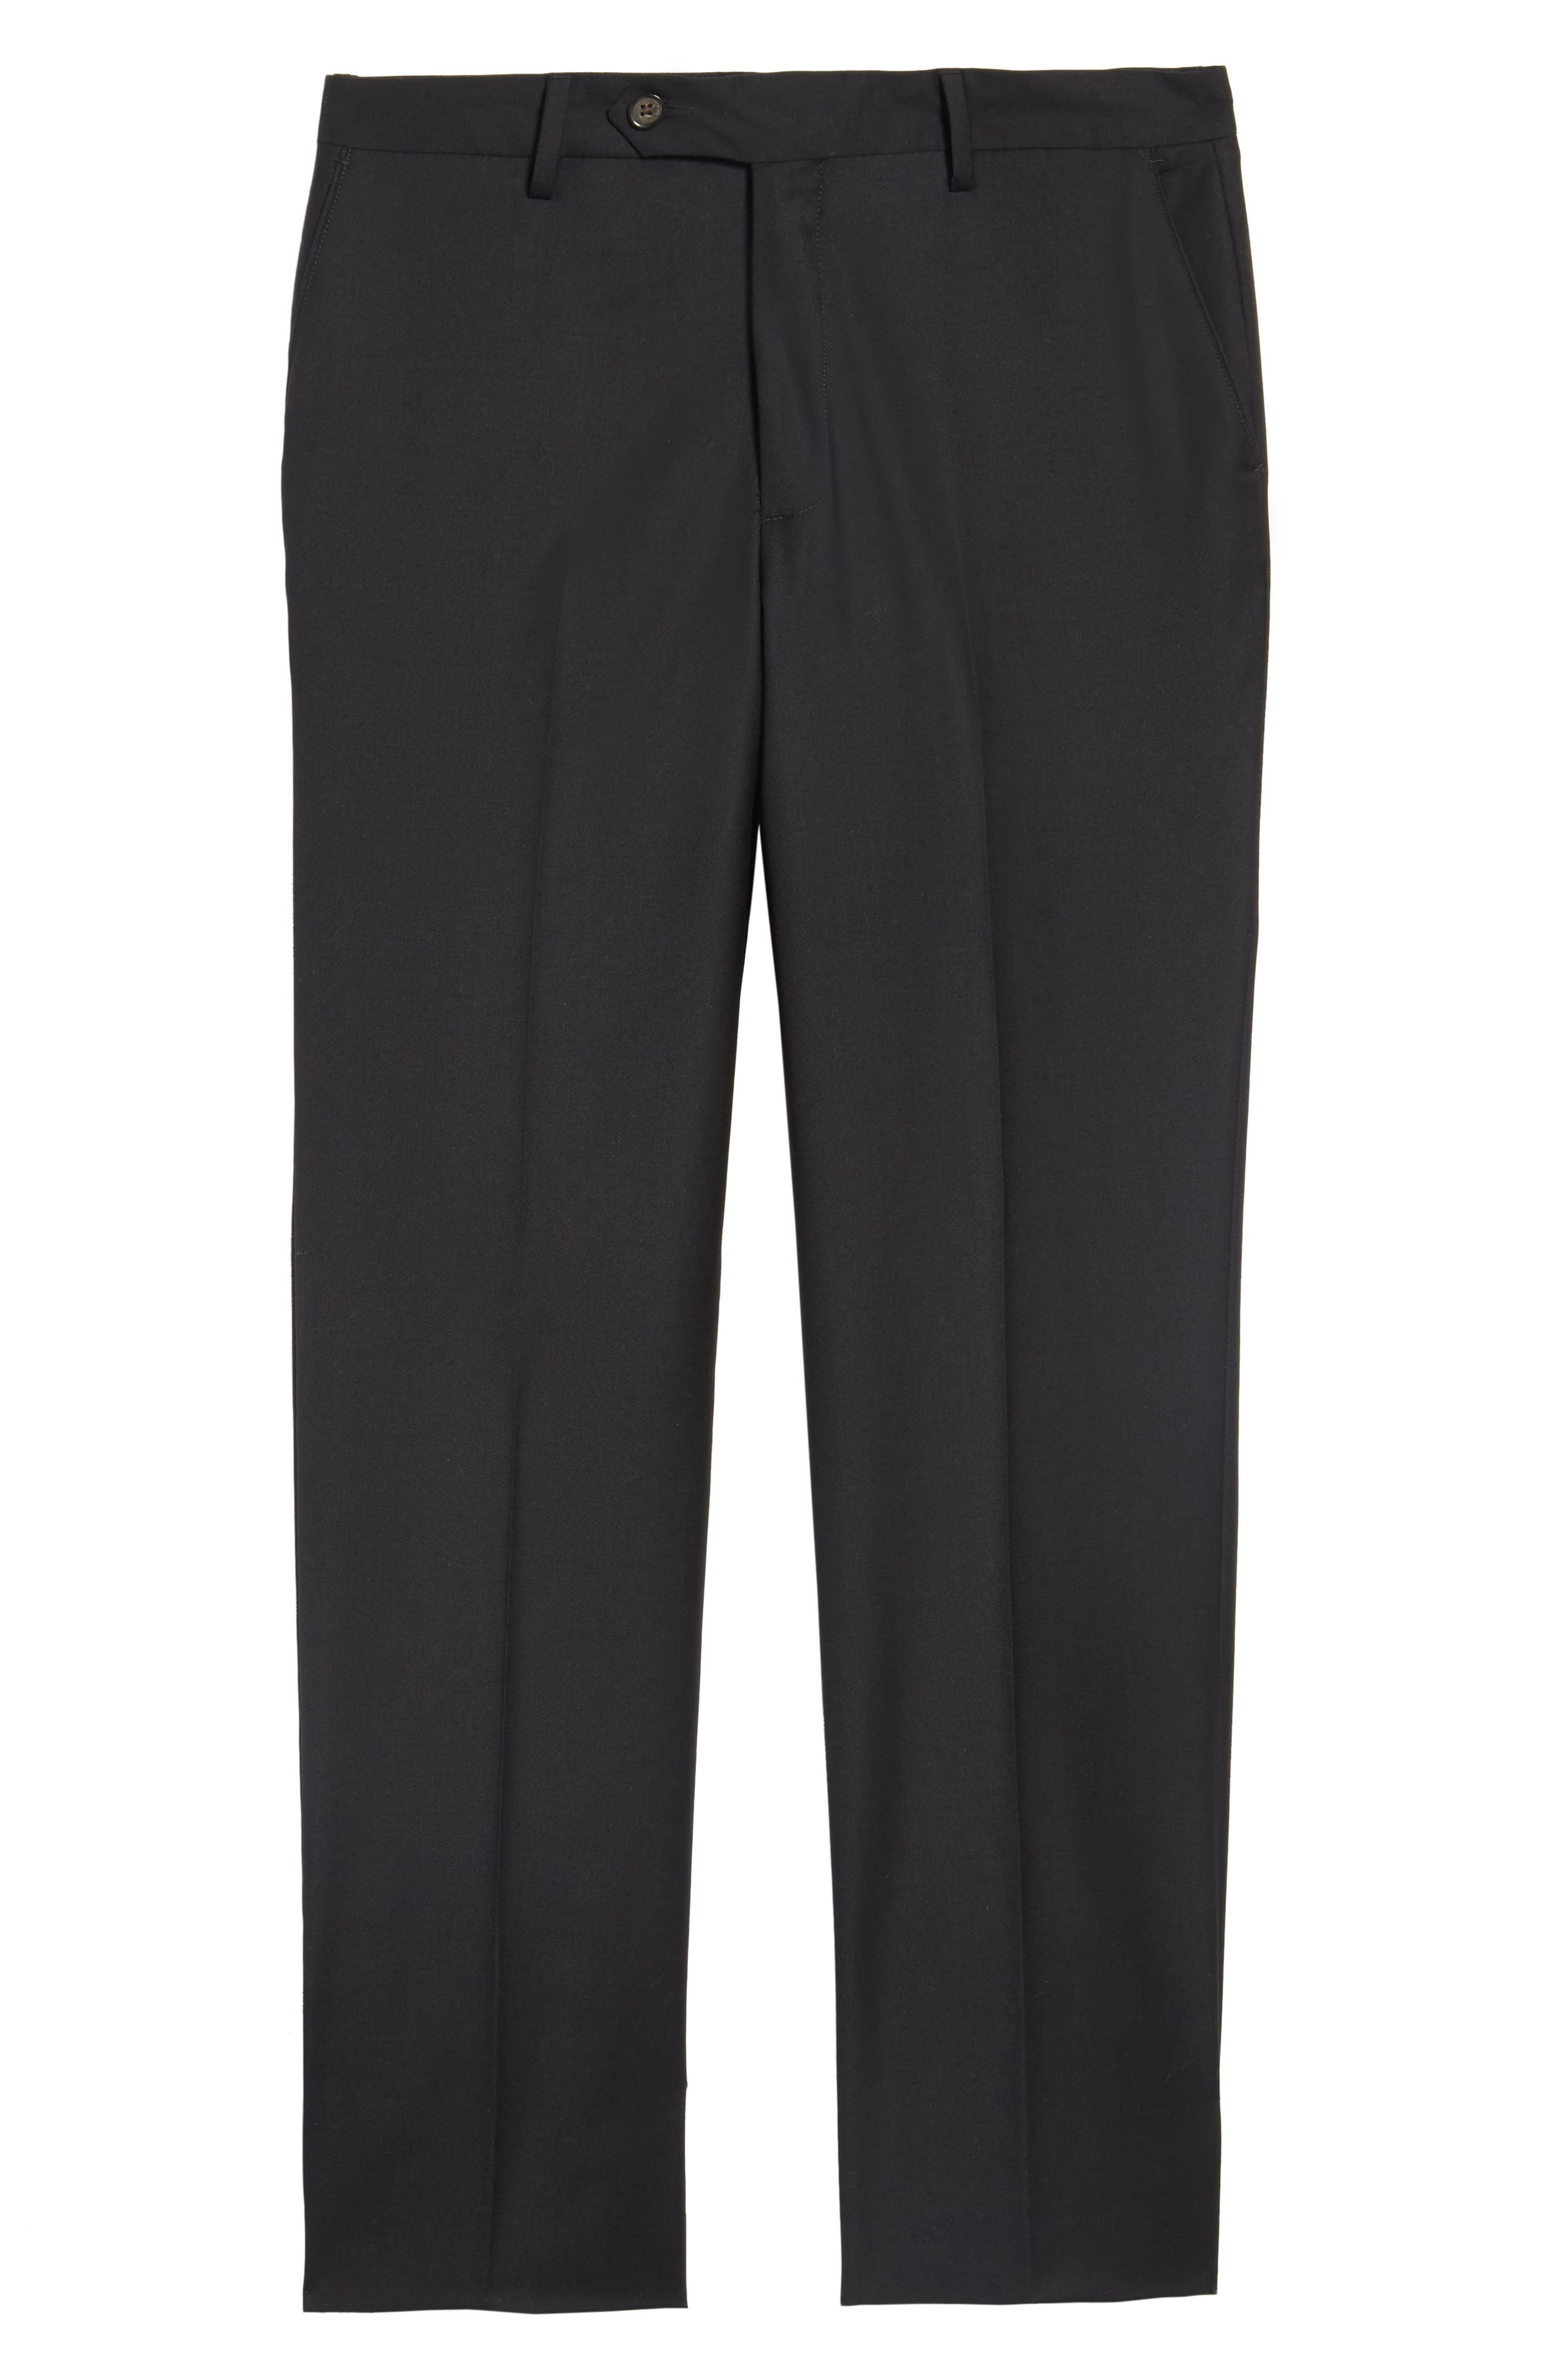 Flat Front Stretch Solid Wool Trousers,                             Alternate thumbnail 6, color,                             001